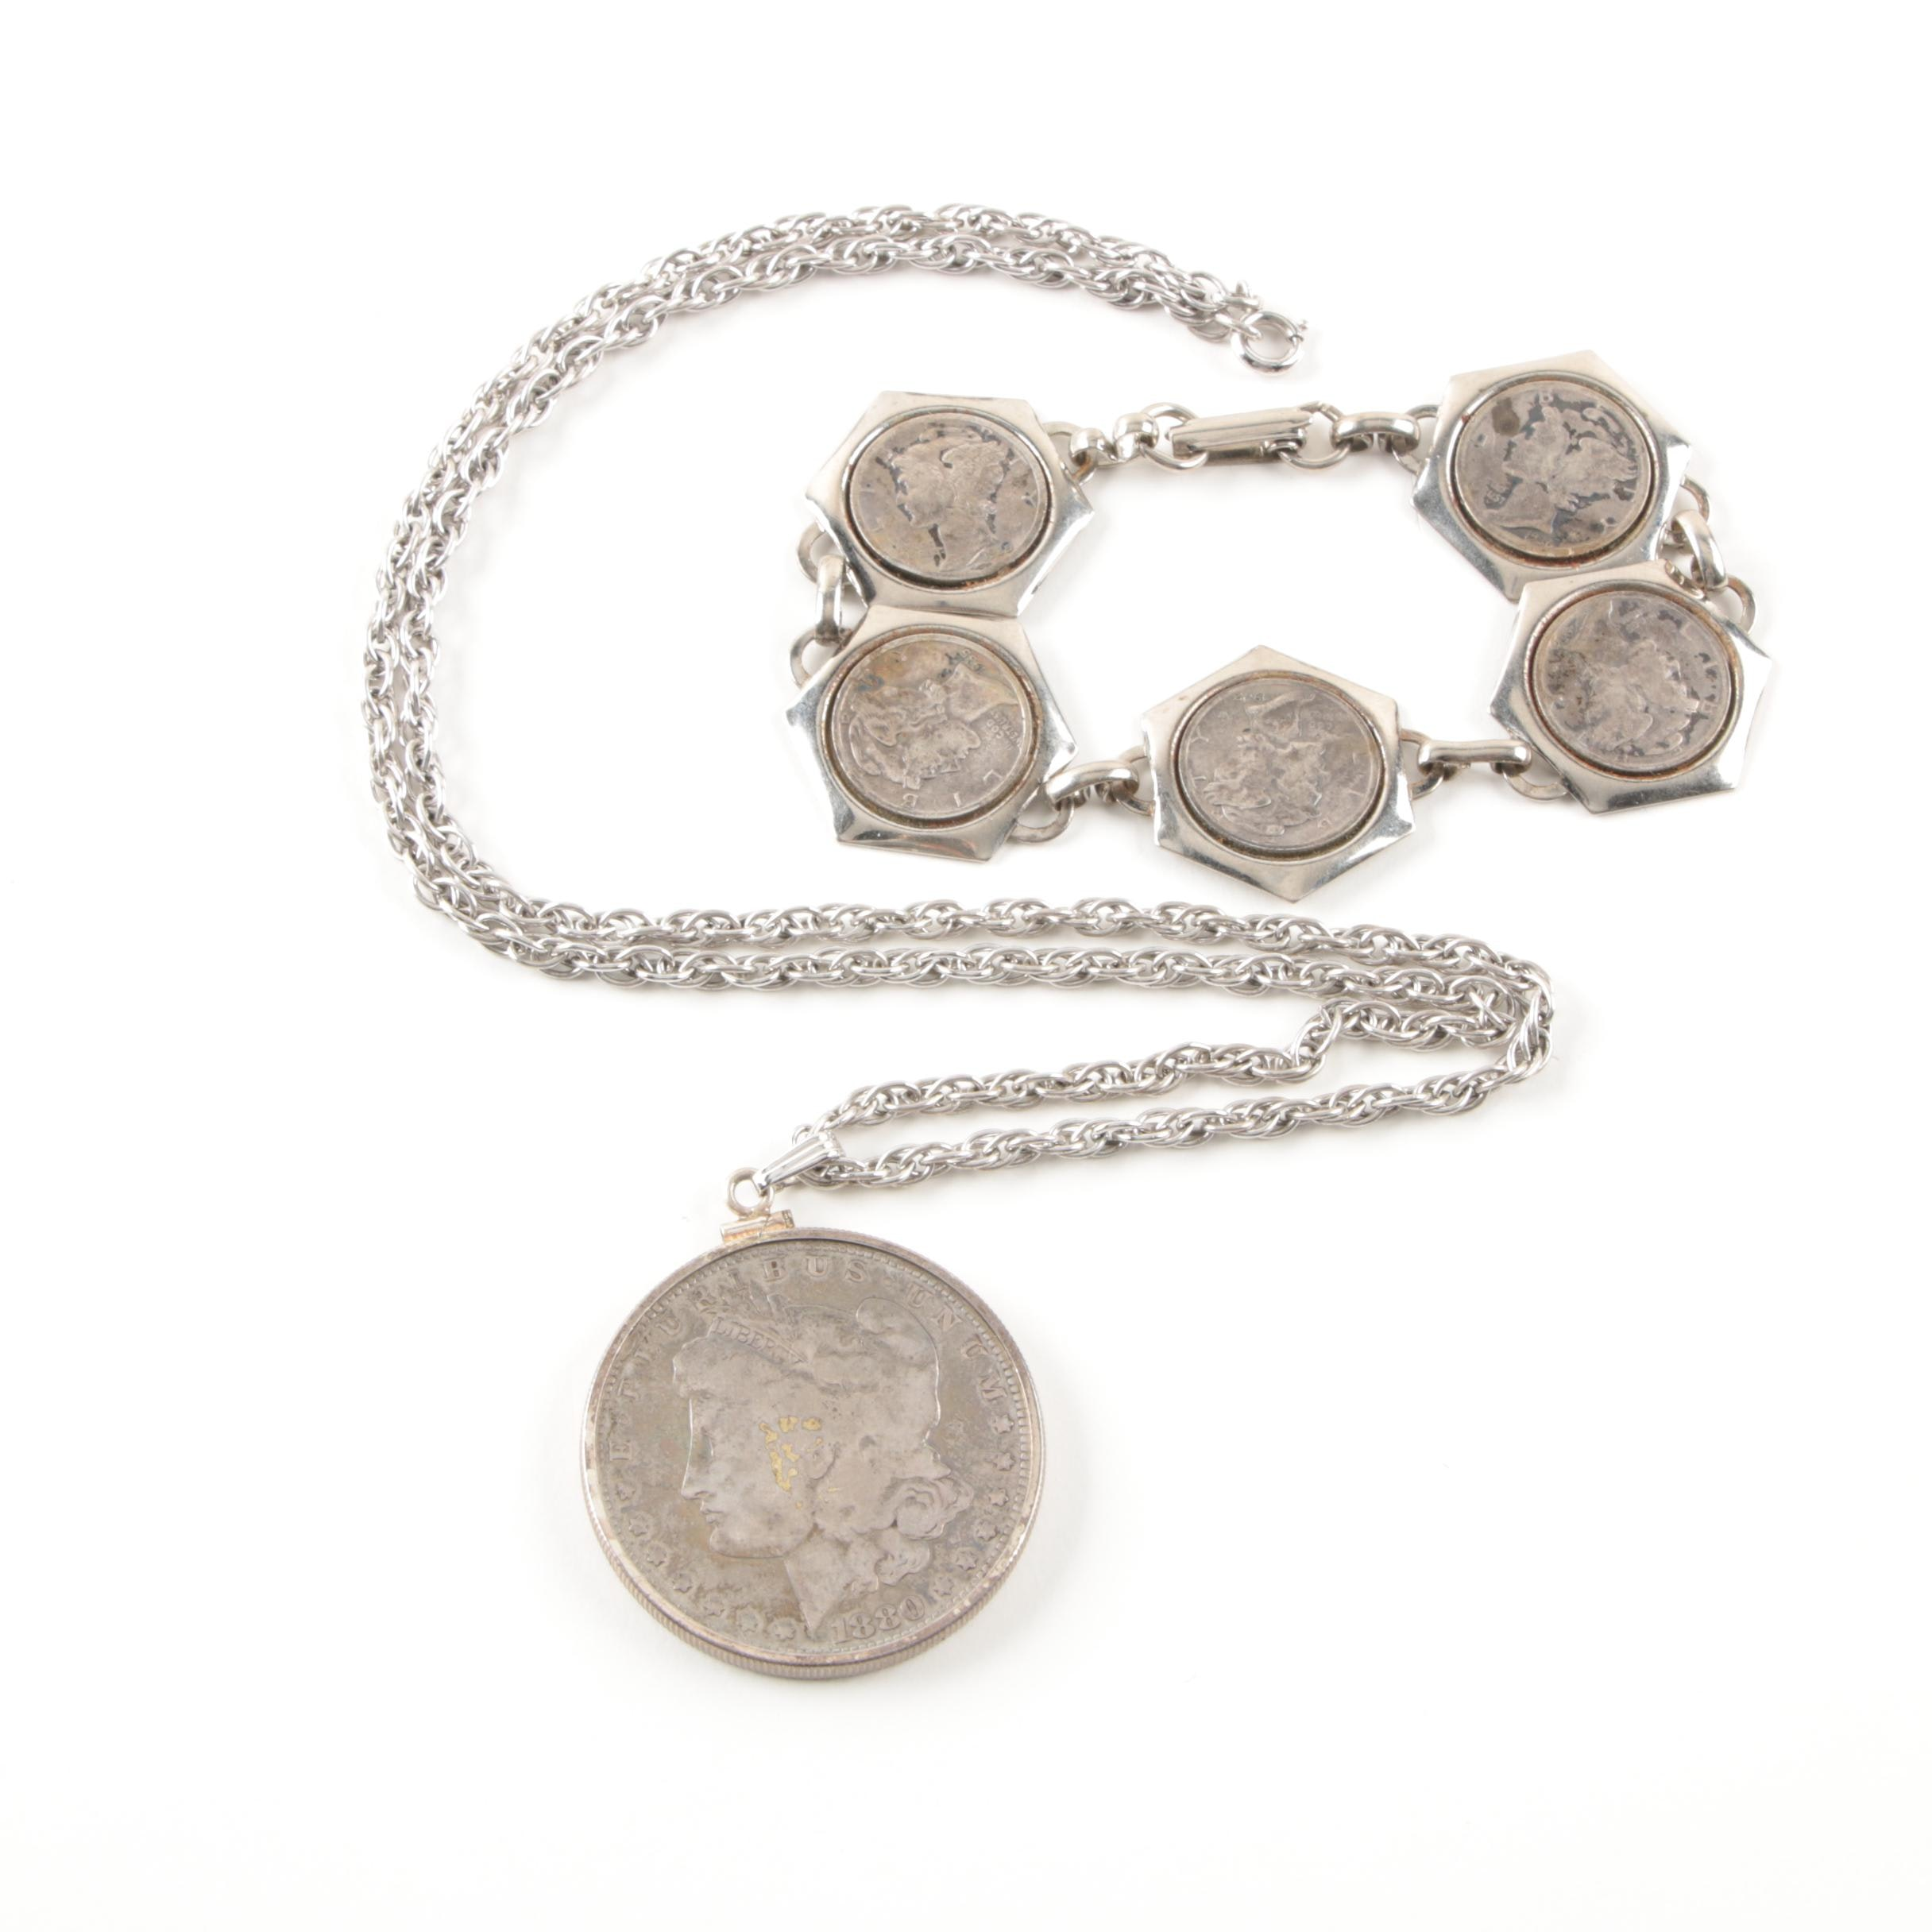 Sterling Silver Necklace and Costume Bracelet with Coins